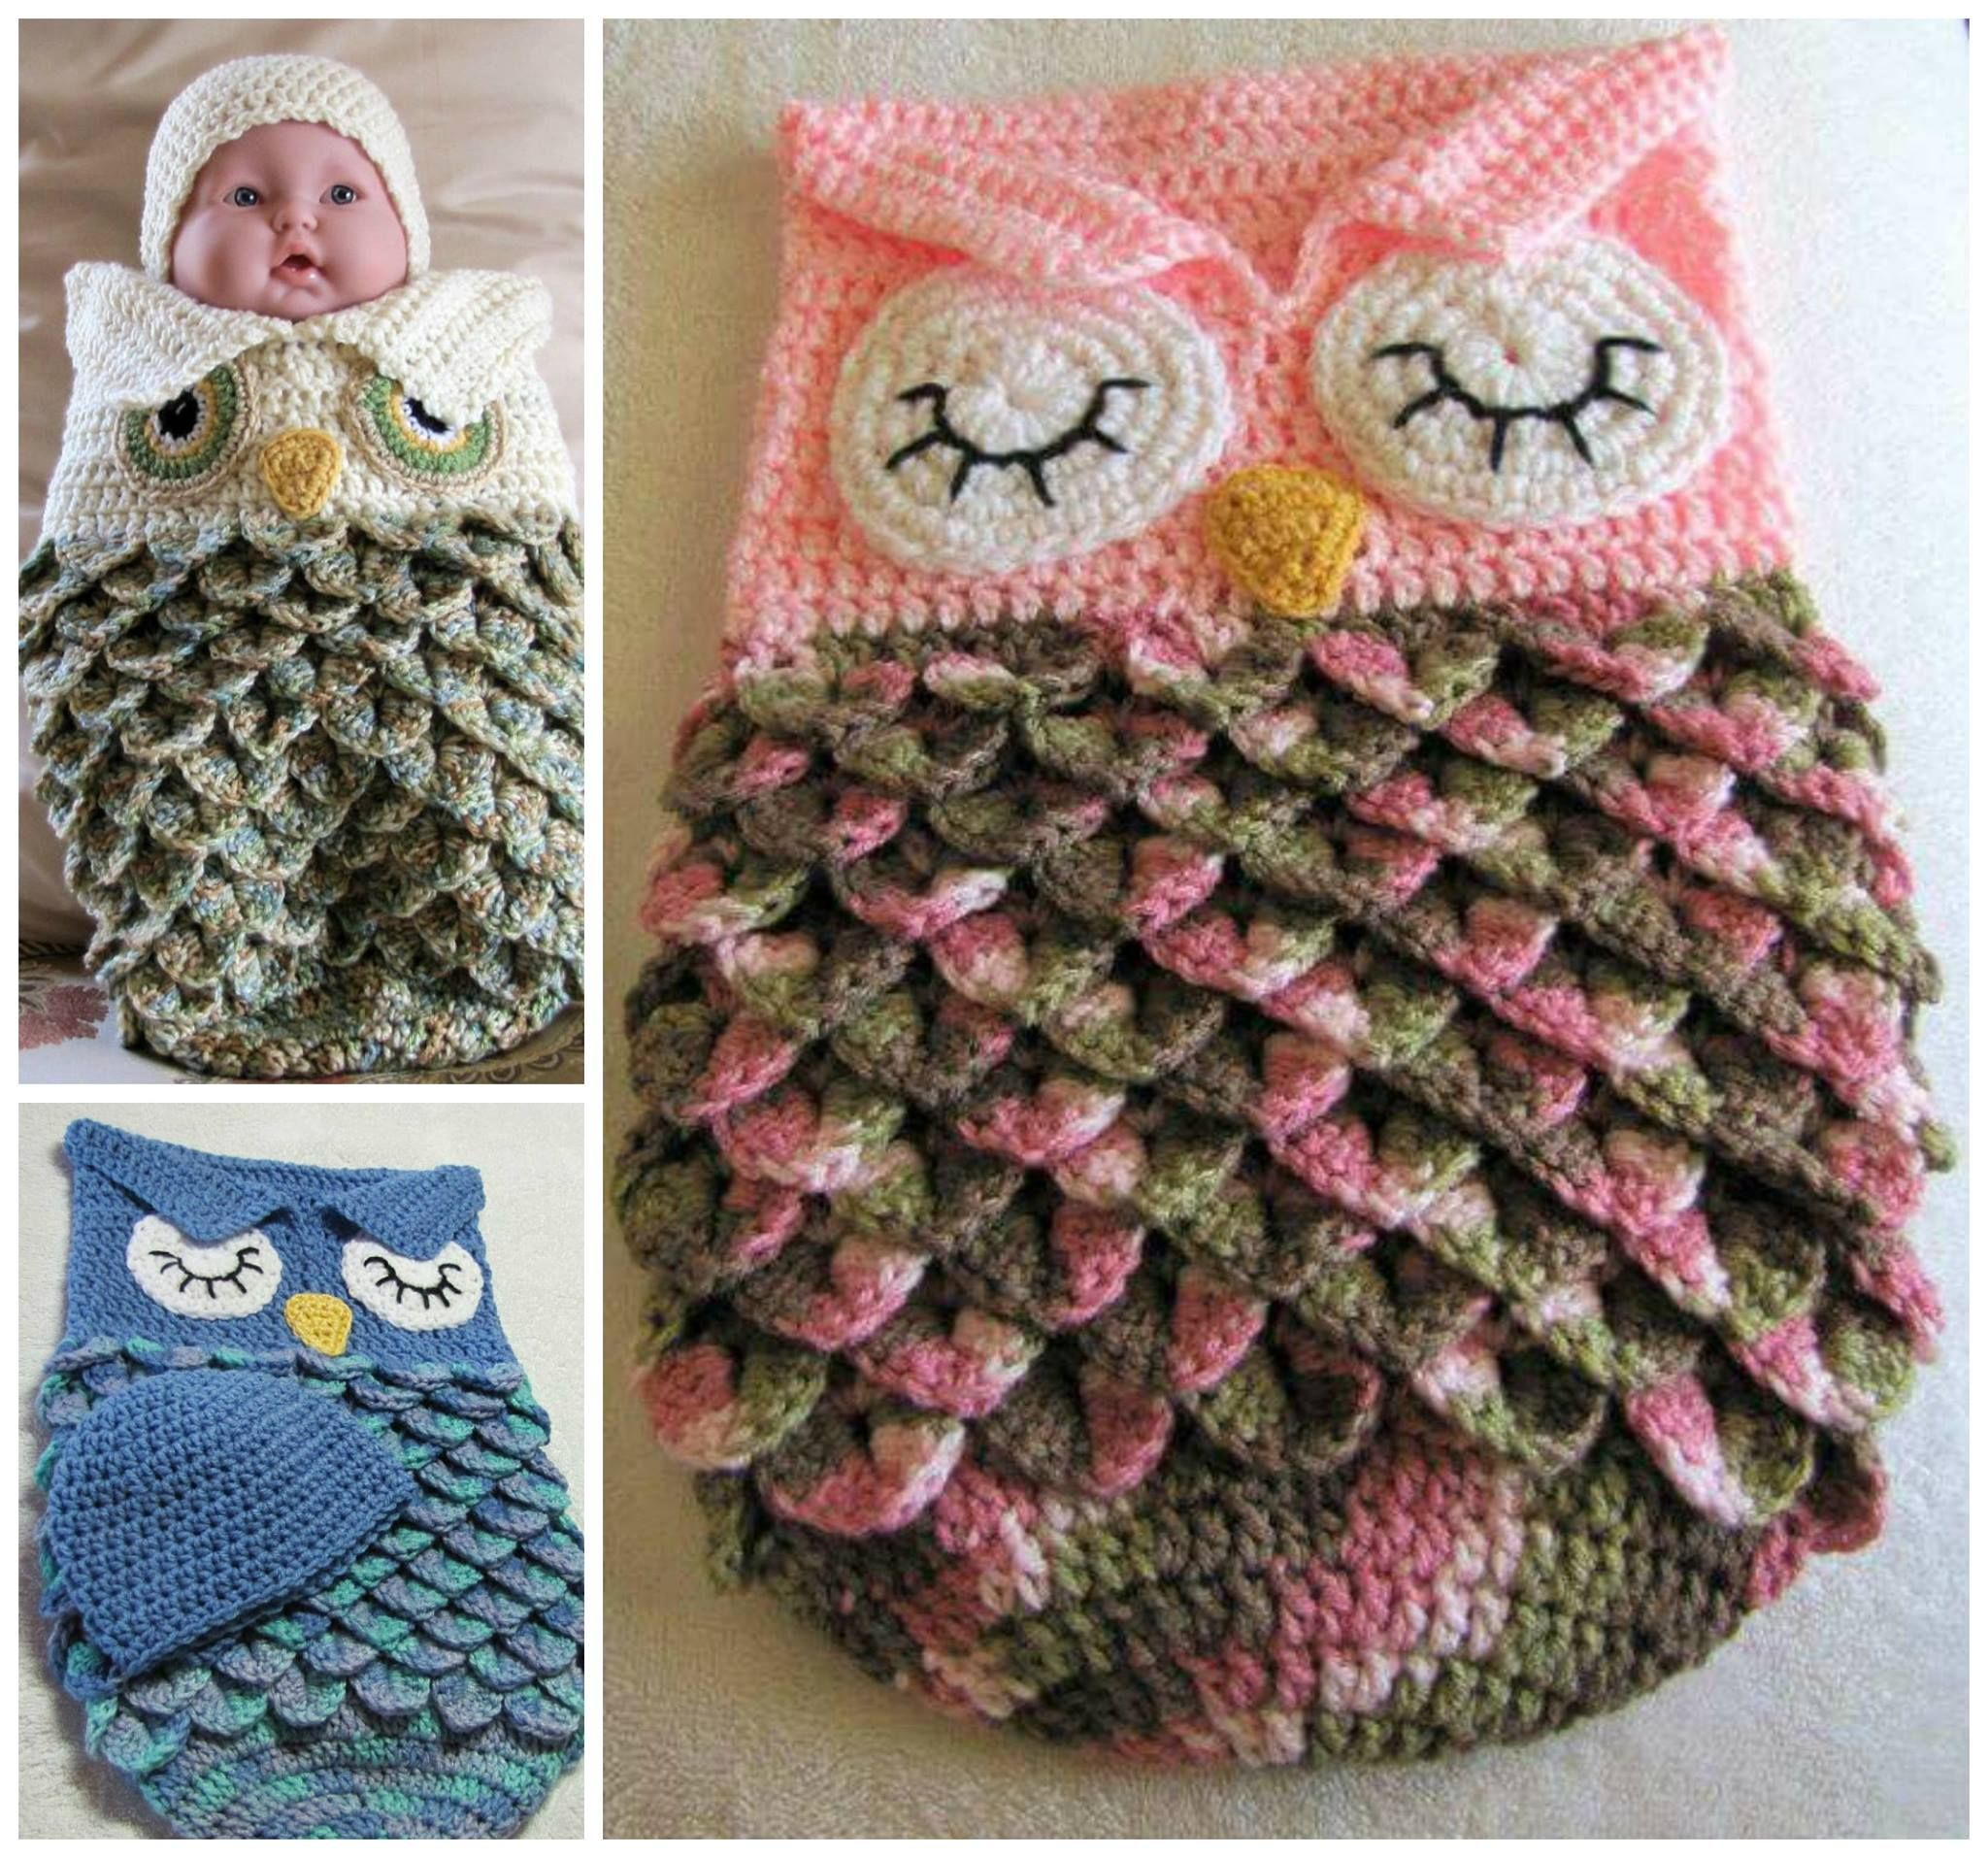 Crocheted owl snuggie for newborns | hobby❤ | Pinterest | Crochet ...